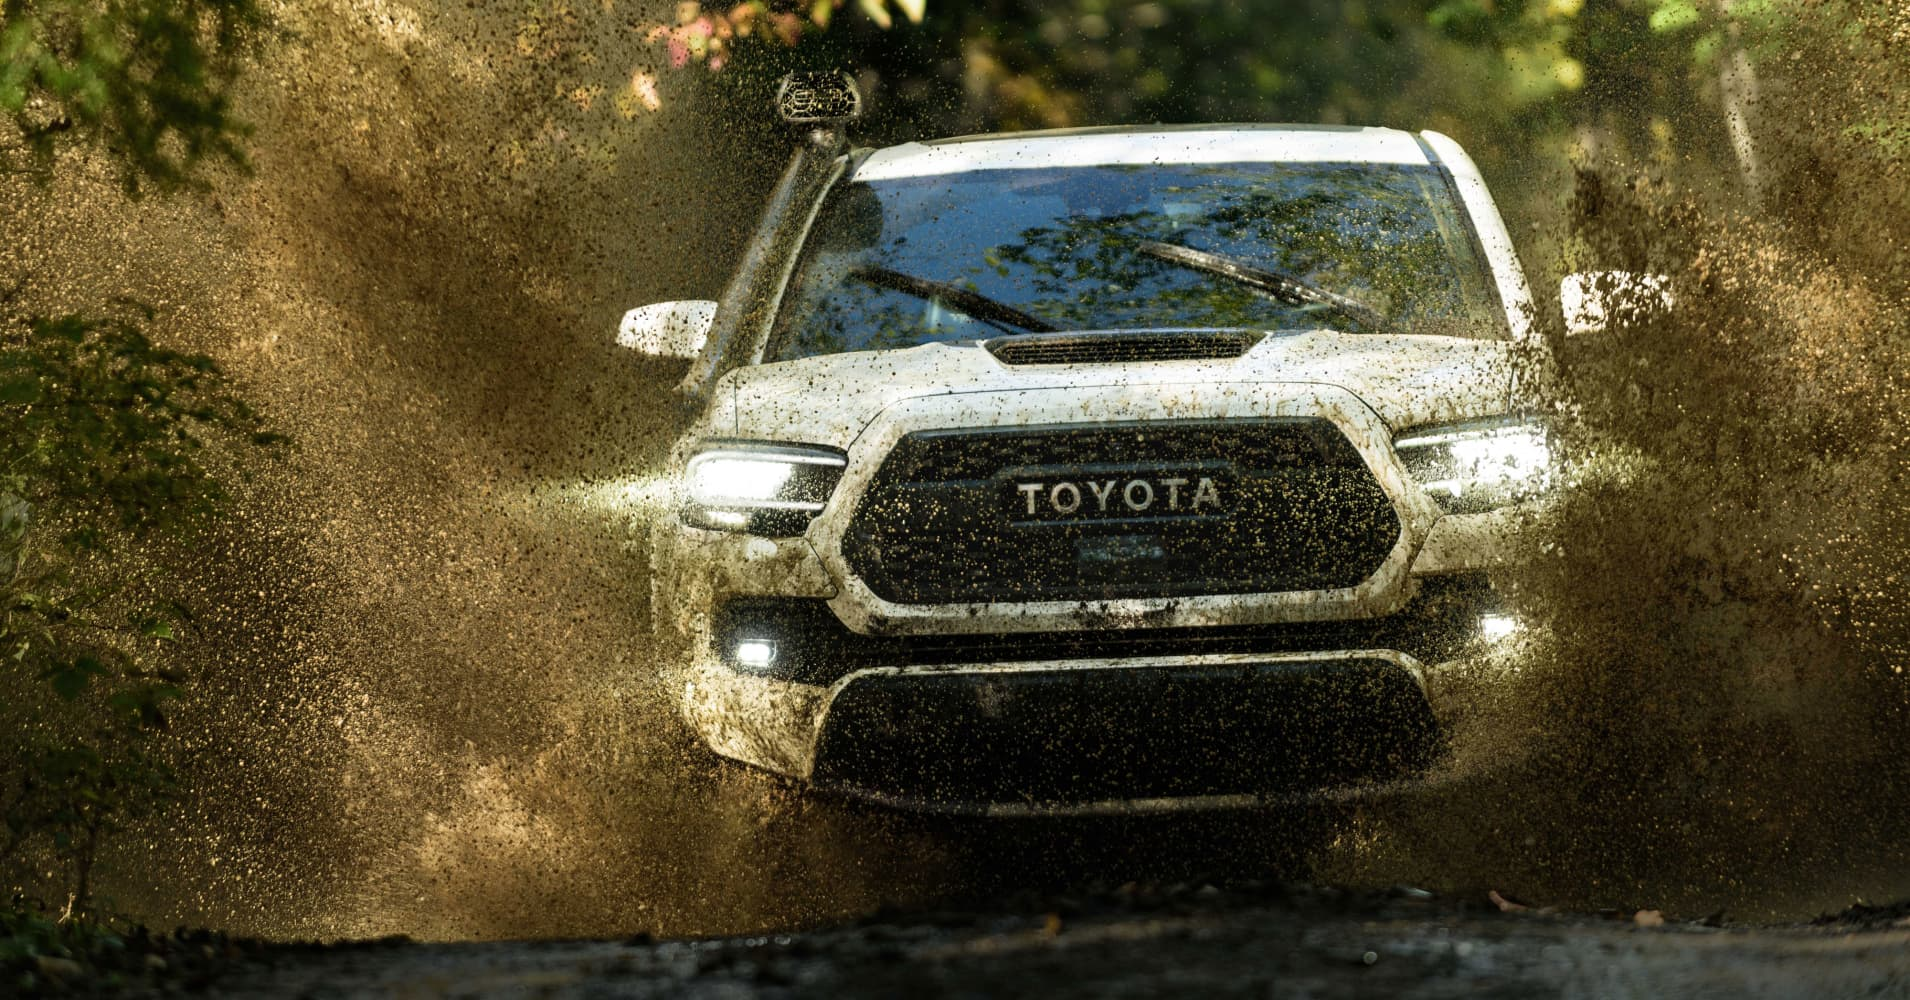 Toyota debuts new Tacoma to protect its crown as No. 1 midsize pickup from encroaching US rivals